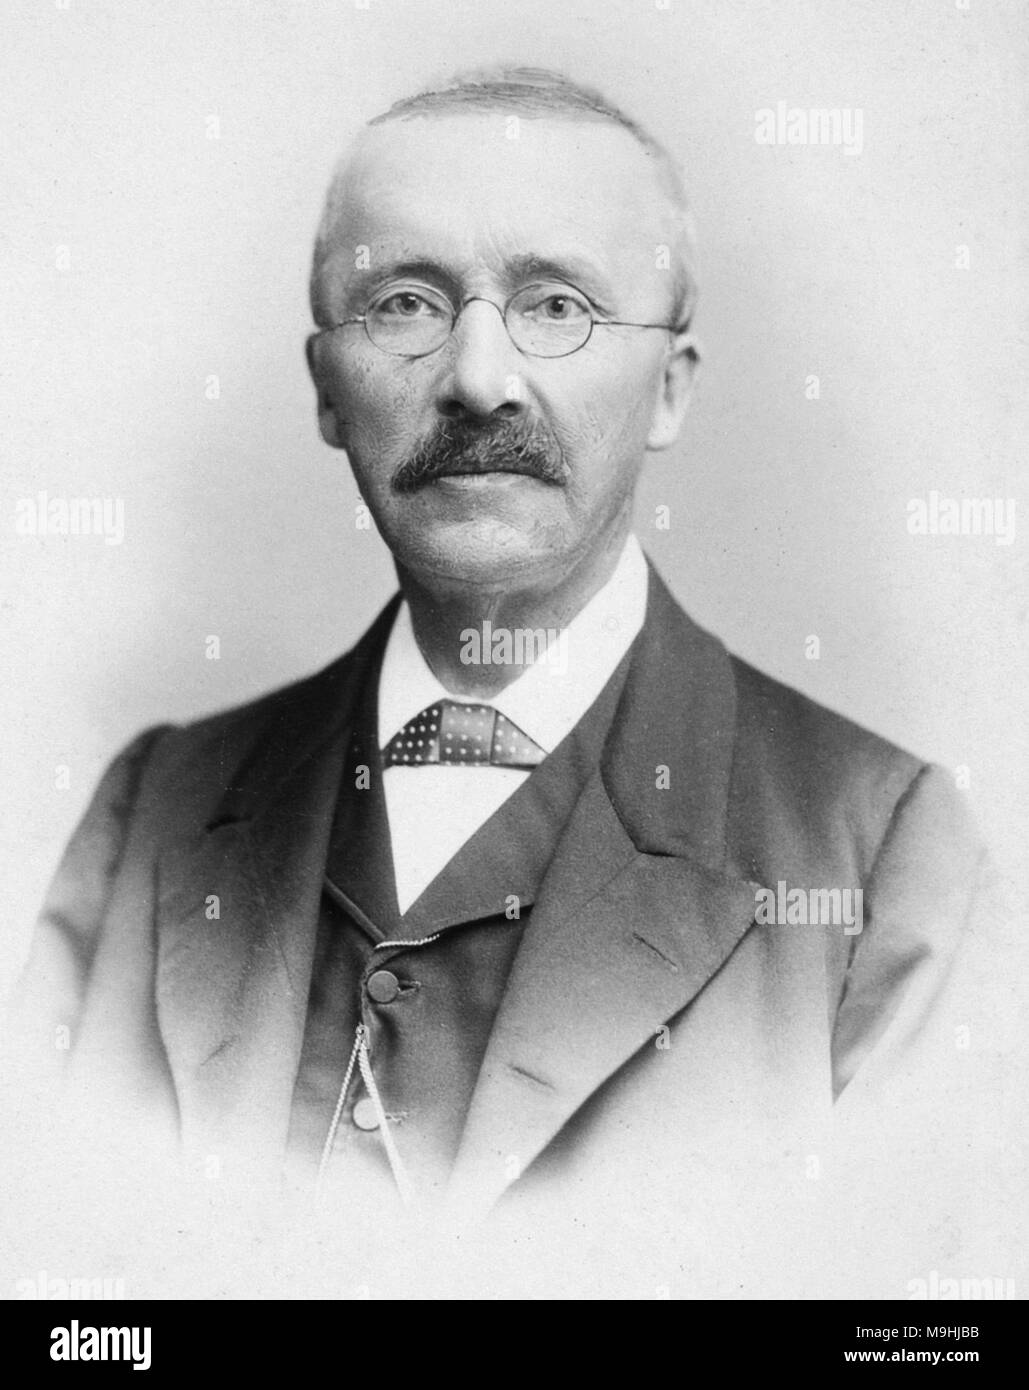 a biography of heinrich schliemann a german businessman and pioneer in the field of archaeology Heinrich schliemannwas a german businessman and a pioneer in the field of archaeology he was an advocate of the historicity of places mentioned in the works of homer schliemann was an archaeological excavator of hissarlik, now presumed to be the site of troy, along with the mycenaean sites mycenae and tiryns.